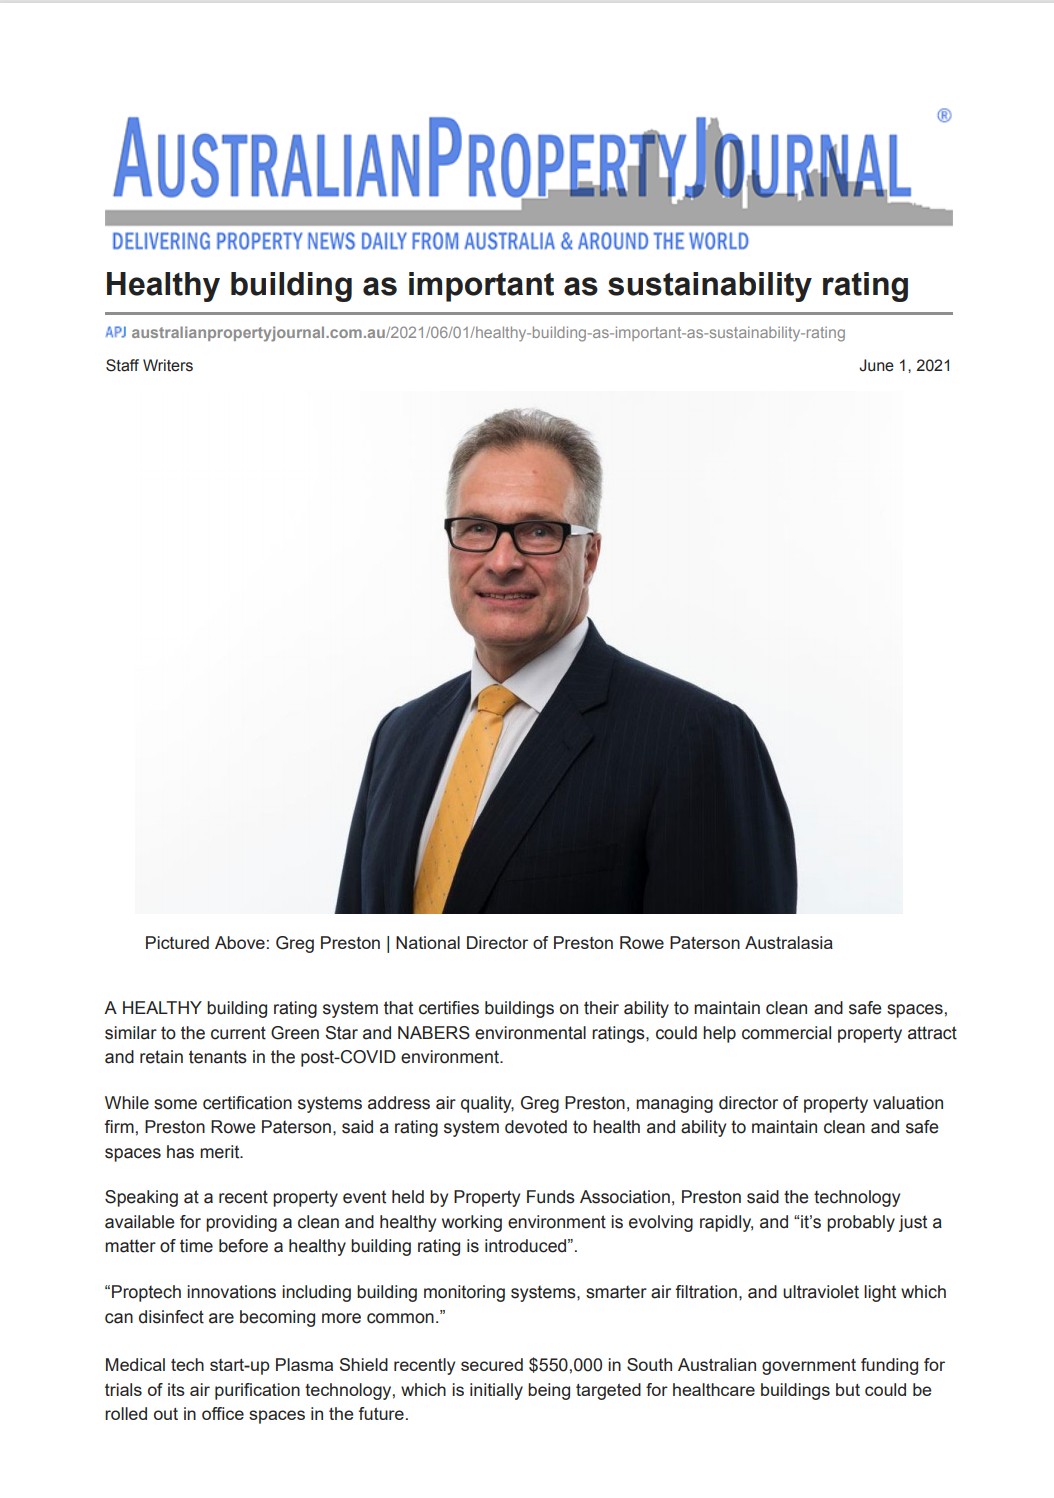 APJ Article - 01/06/2021 Healthy Building as Importany as Sustainability Rating